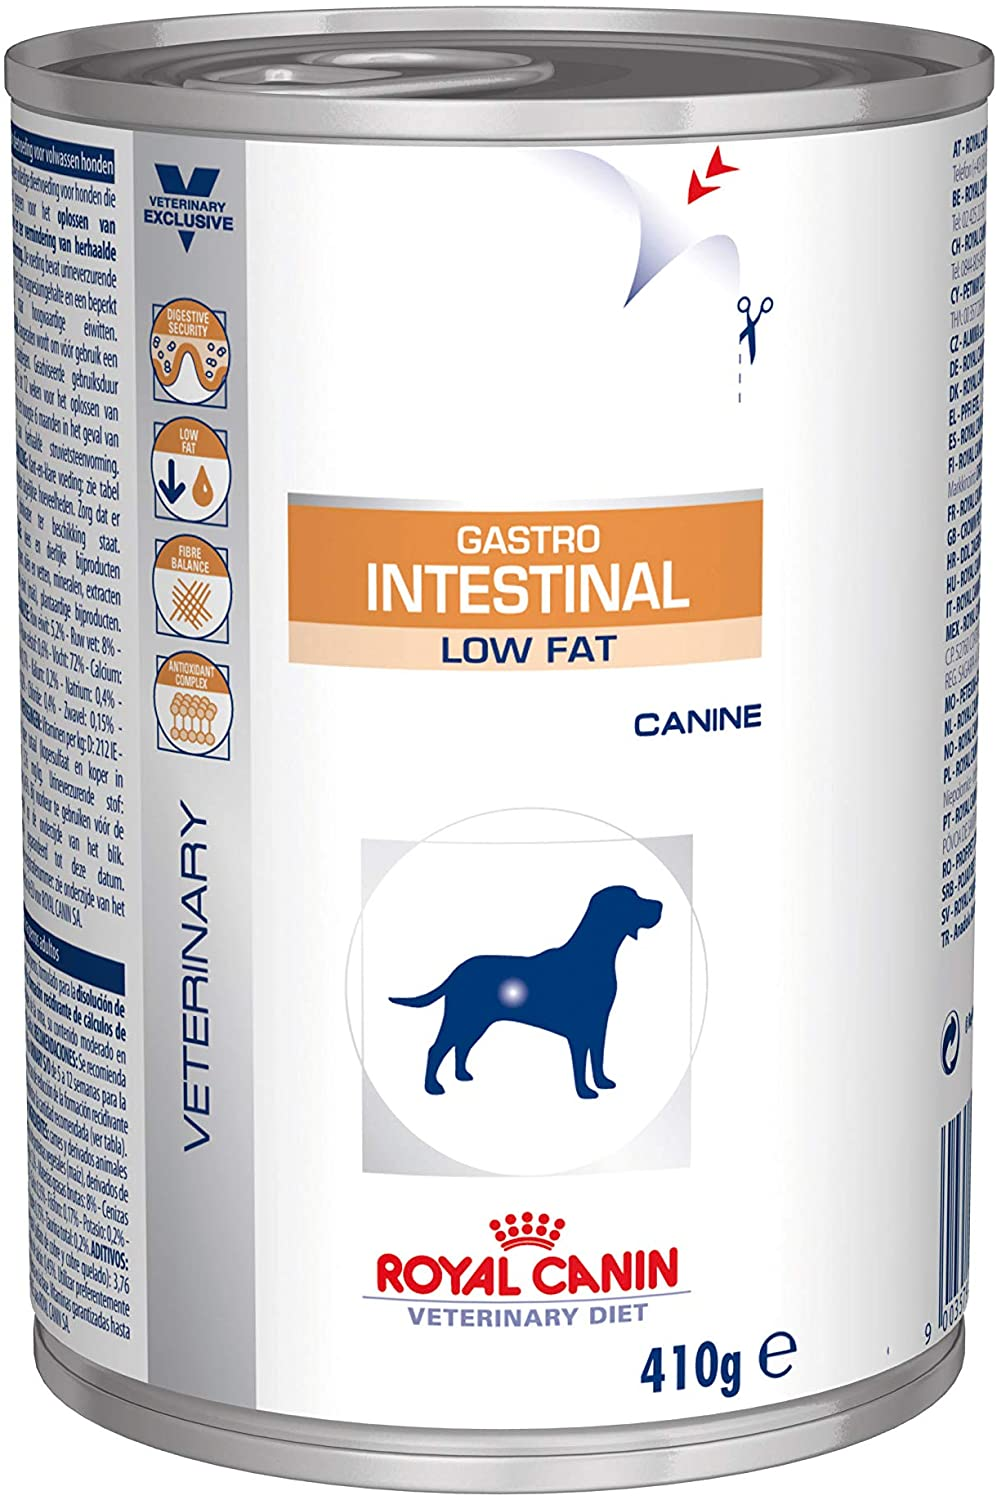 Royal Canin Gastrointestinal Low Fat Dog Food